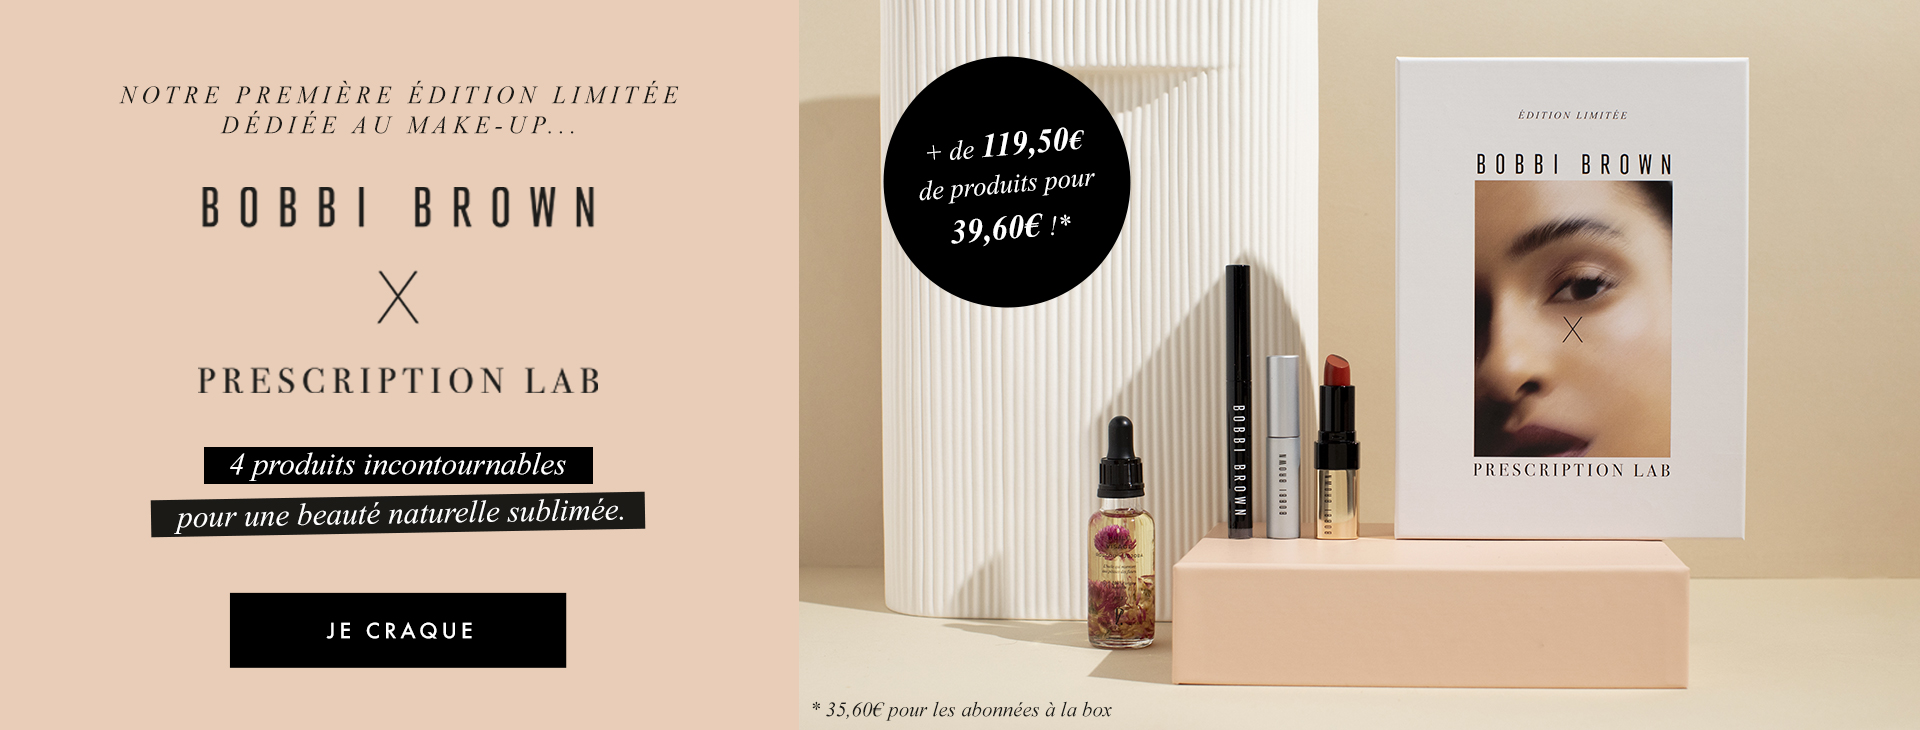 D-box-edition-limitee-bobbi-brown